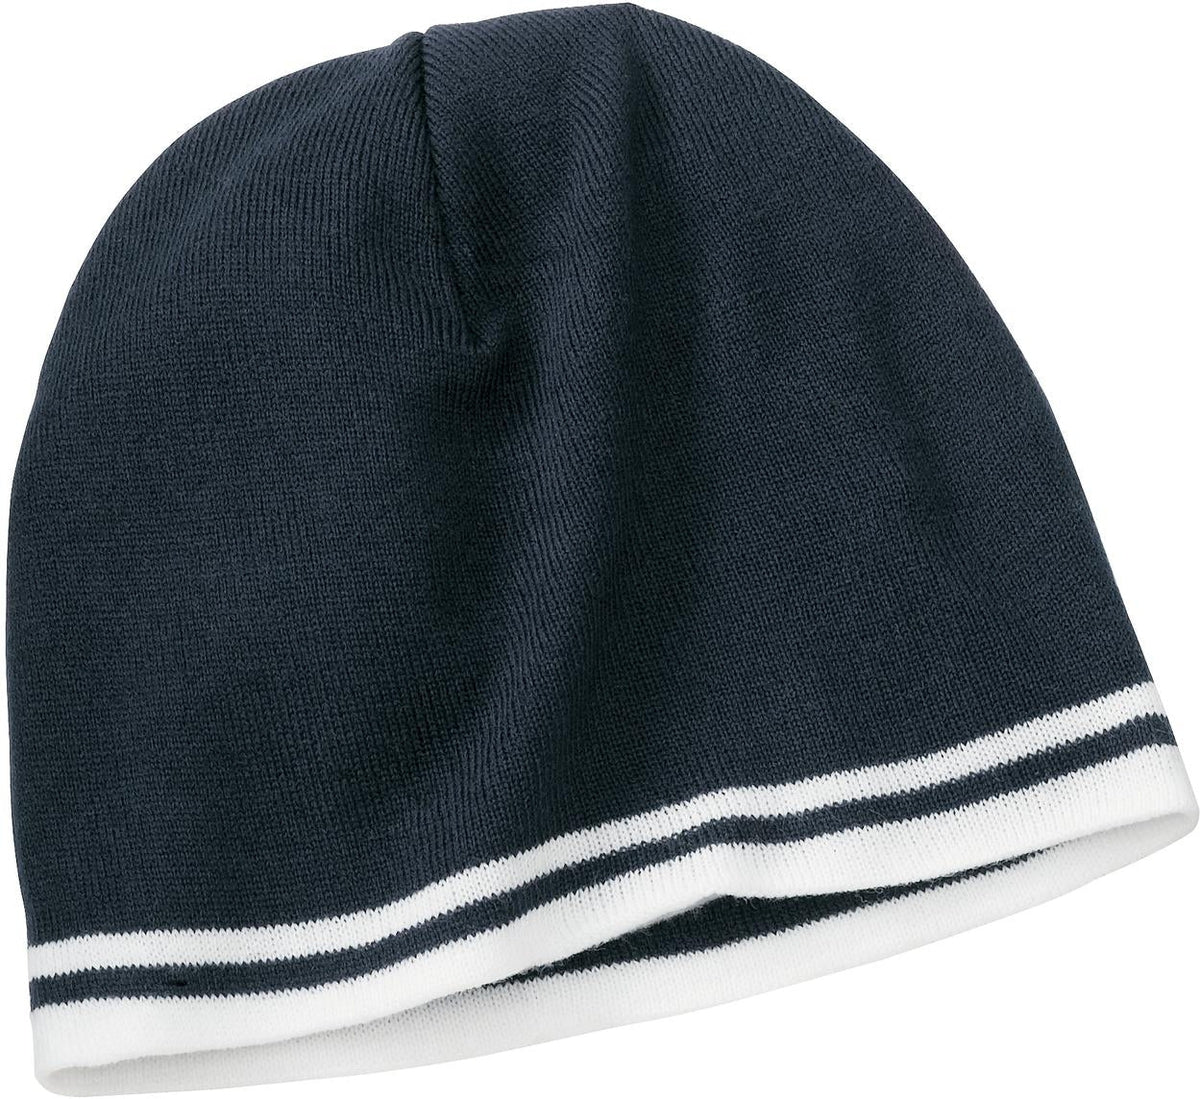 Port & Company-Fine Knit Skull Cap with Stripes-Navy/White-Thread Logic